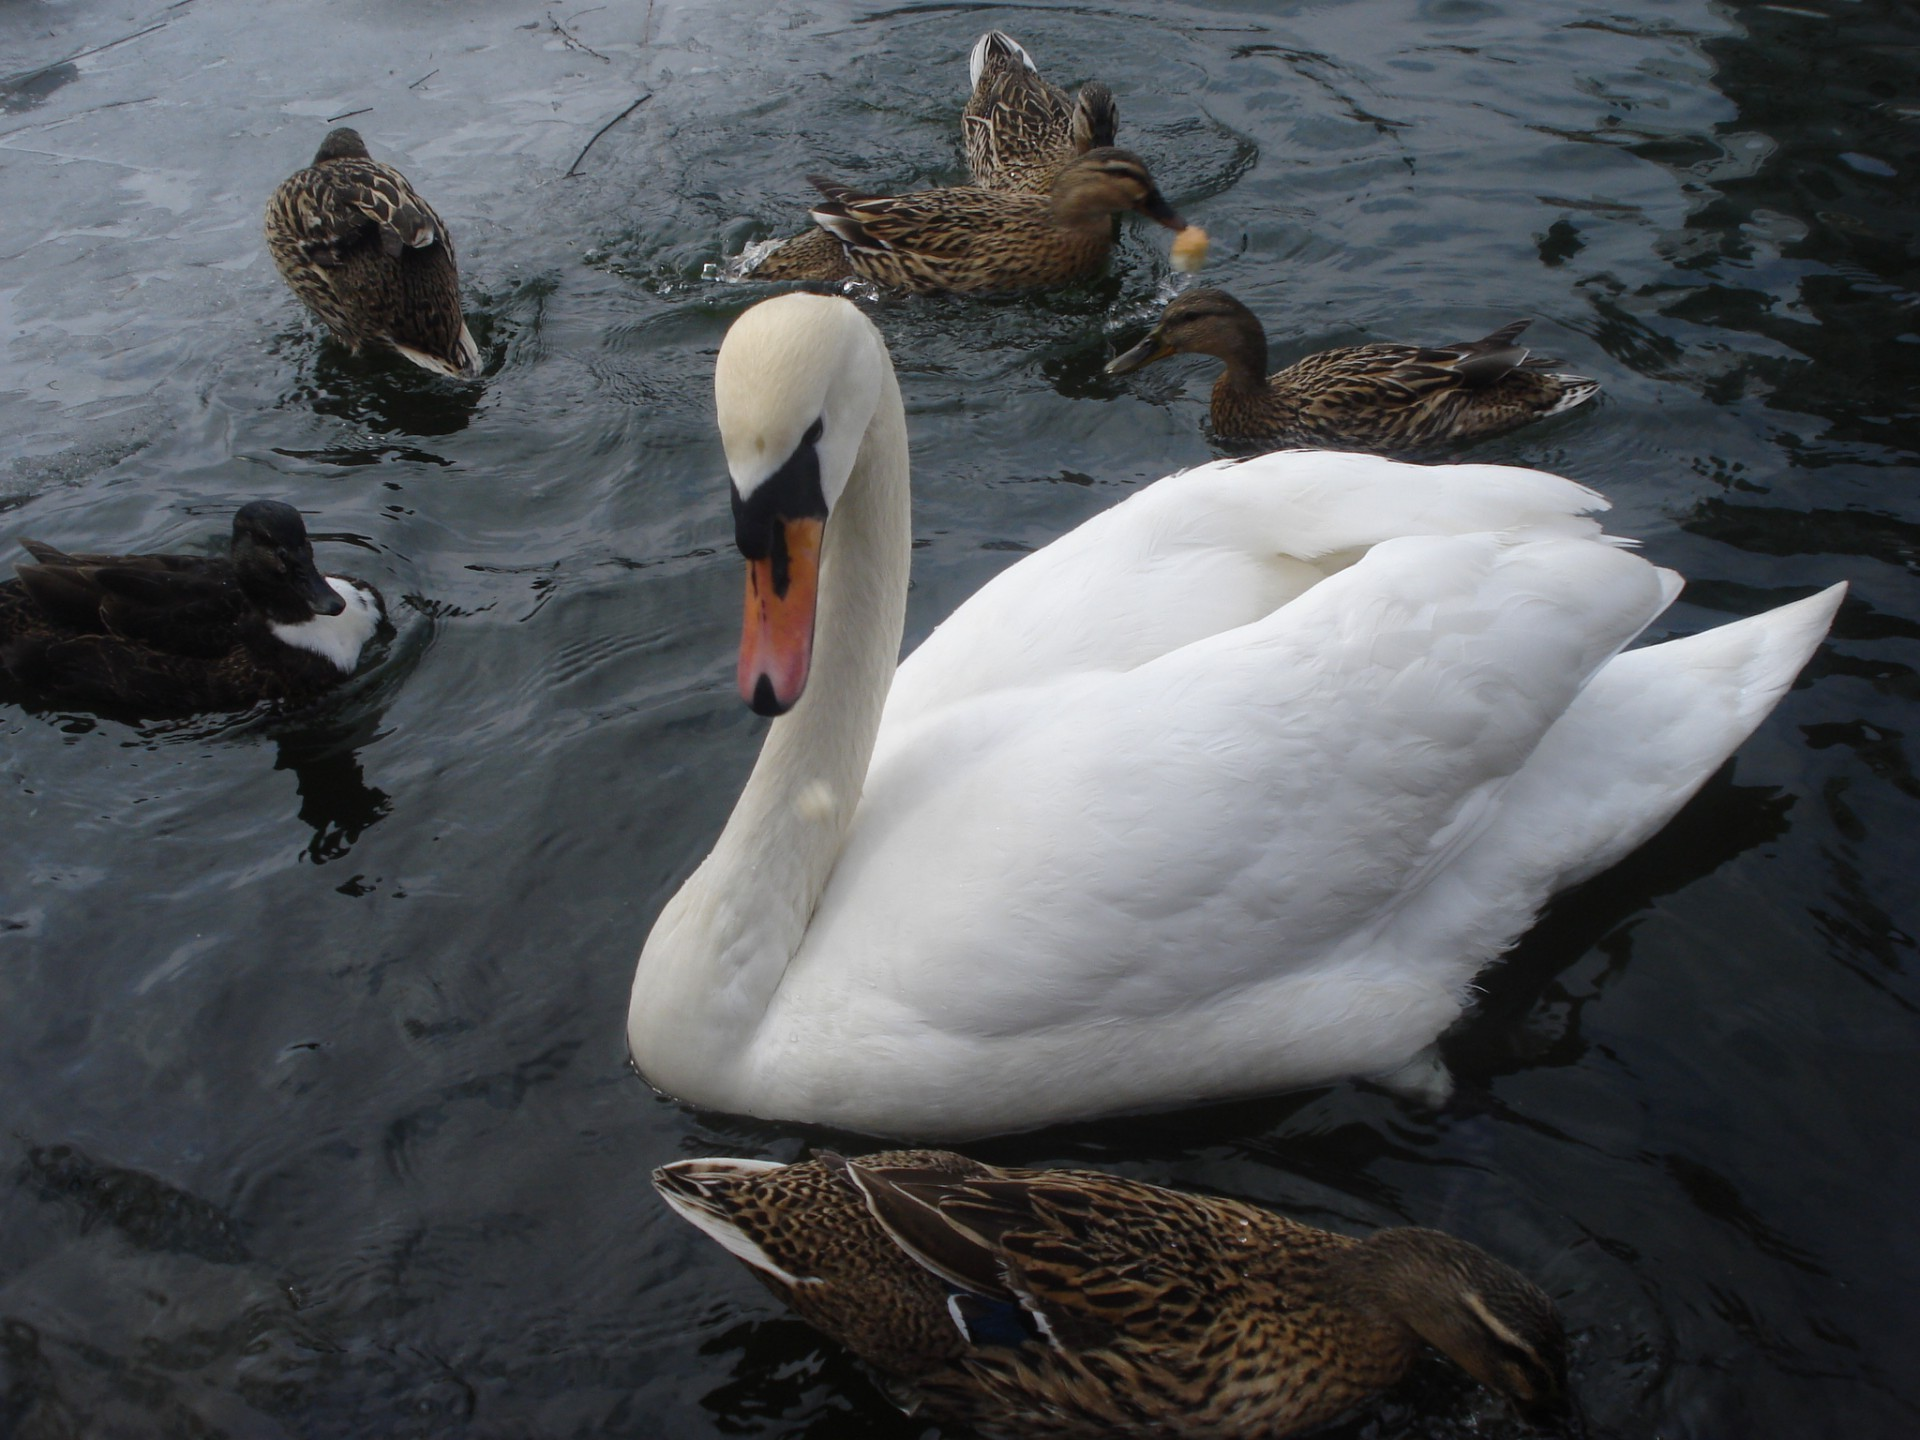 Pond swan duck iphone wallpapers for free voltagebd Choice Image